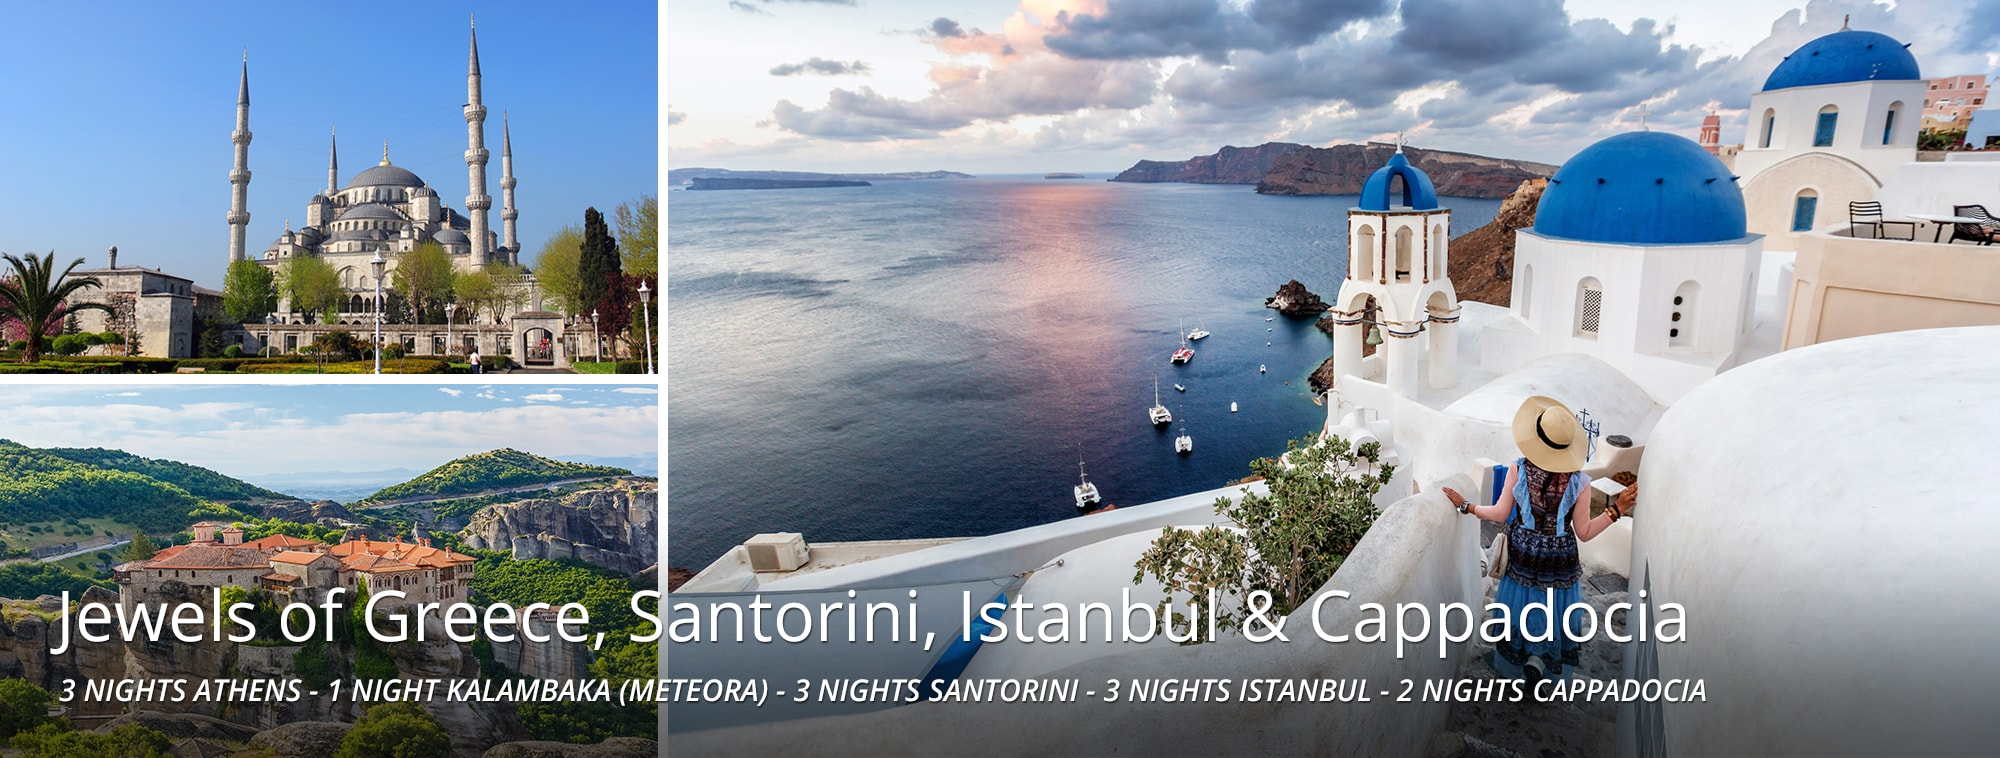 Jewels of Greece, Santorini, Istanbul & Cappadocia Tour Banner